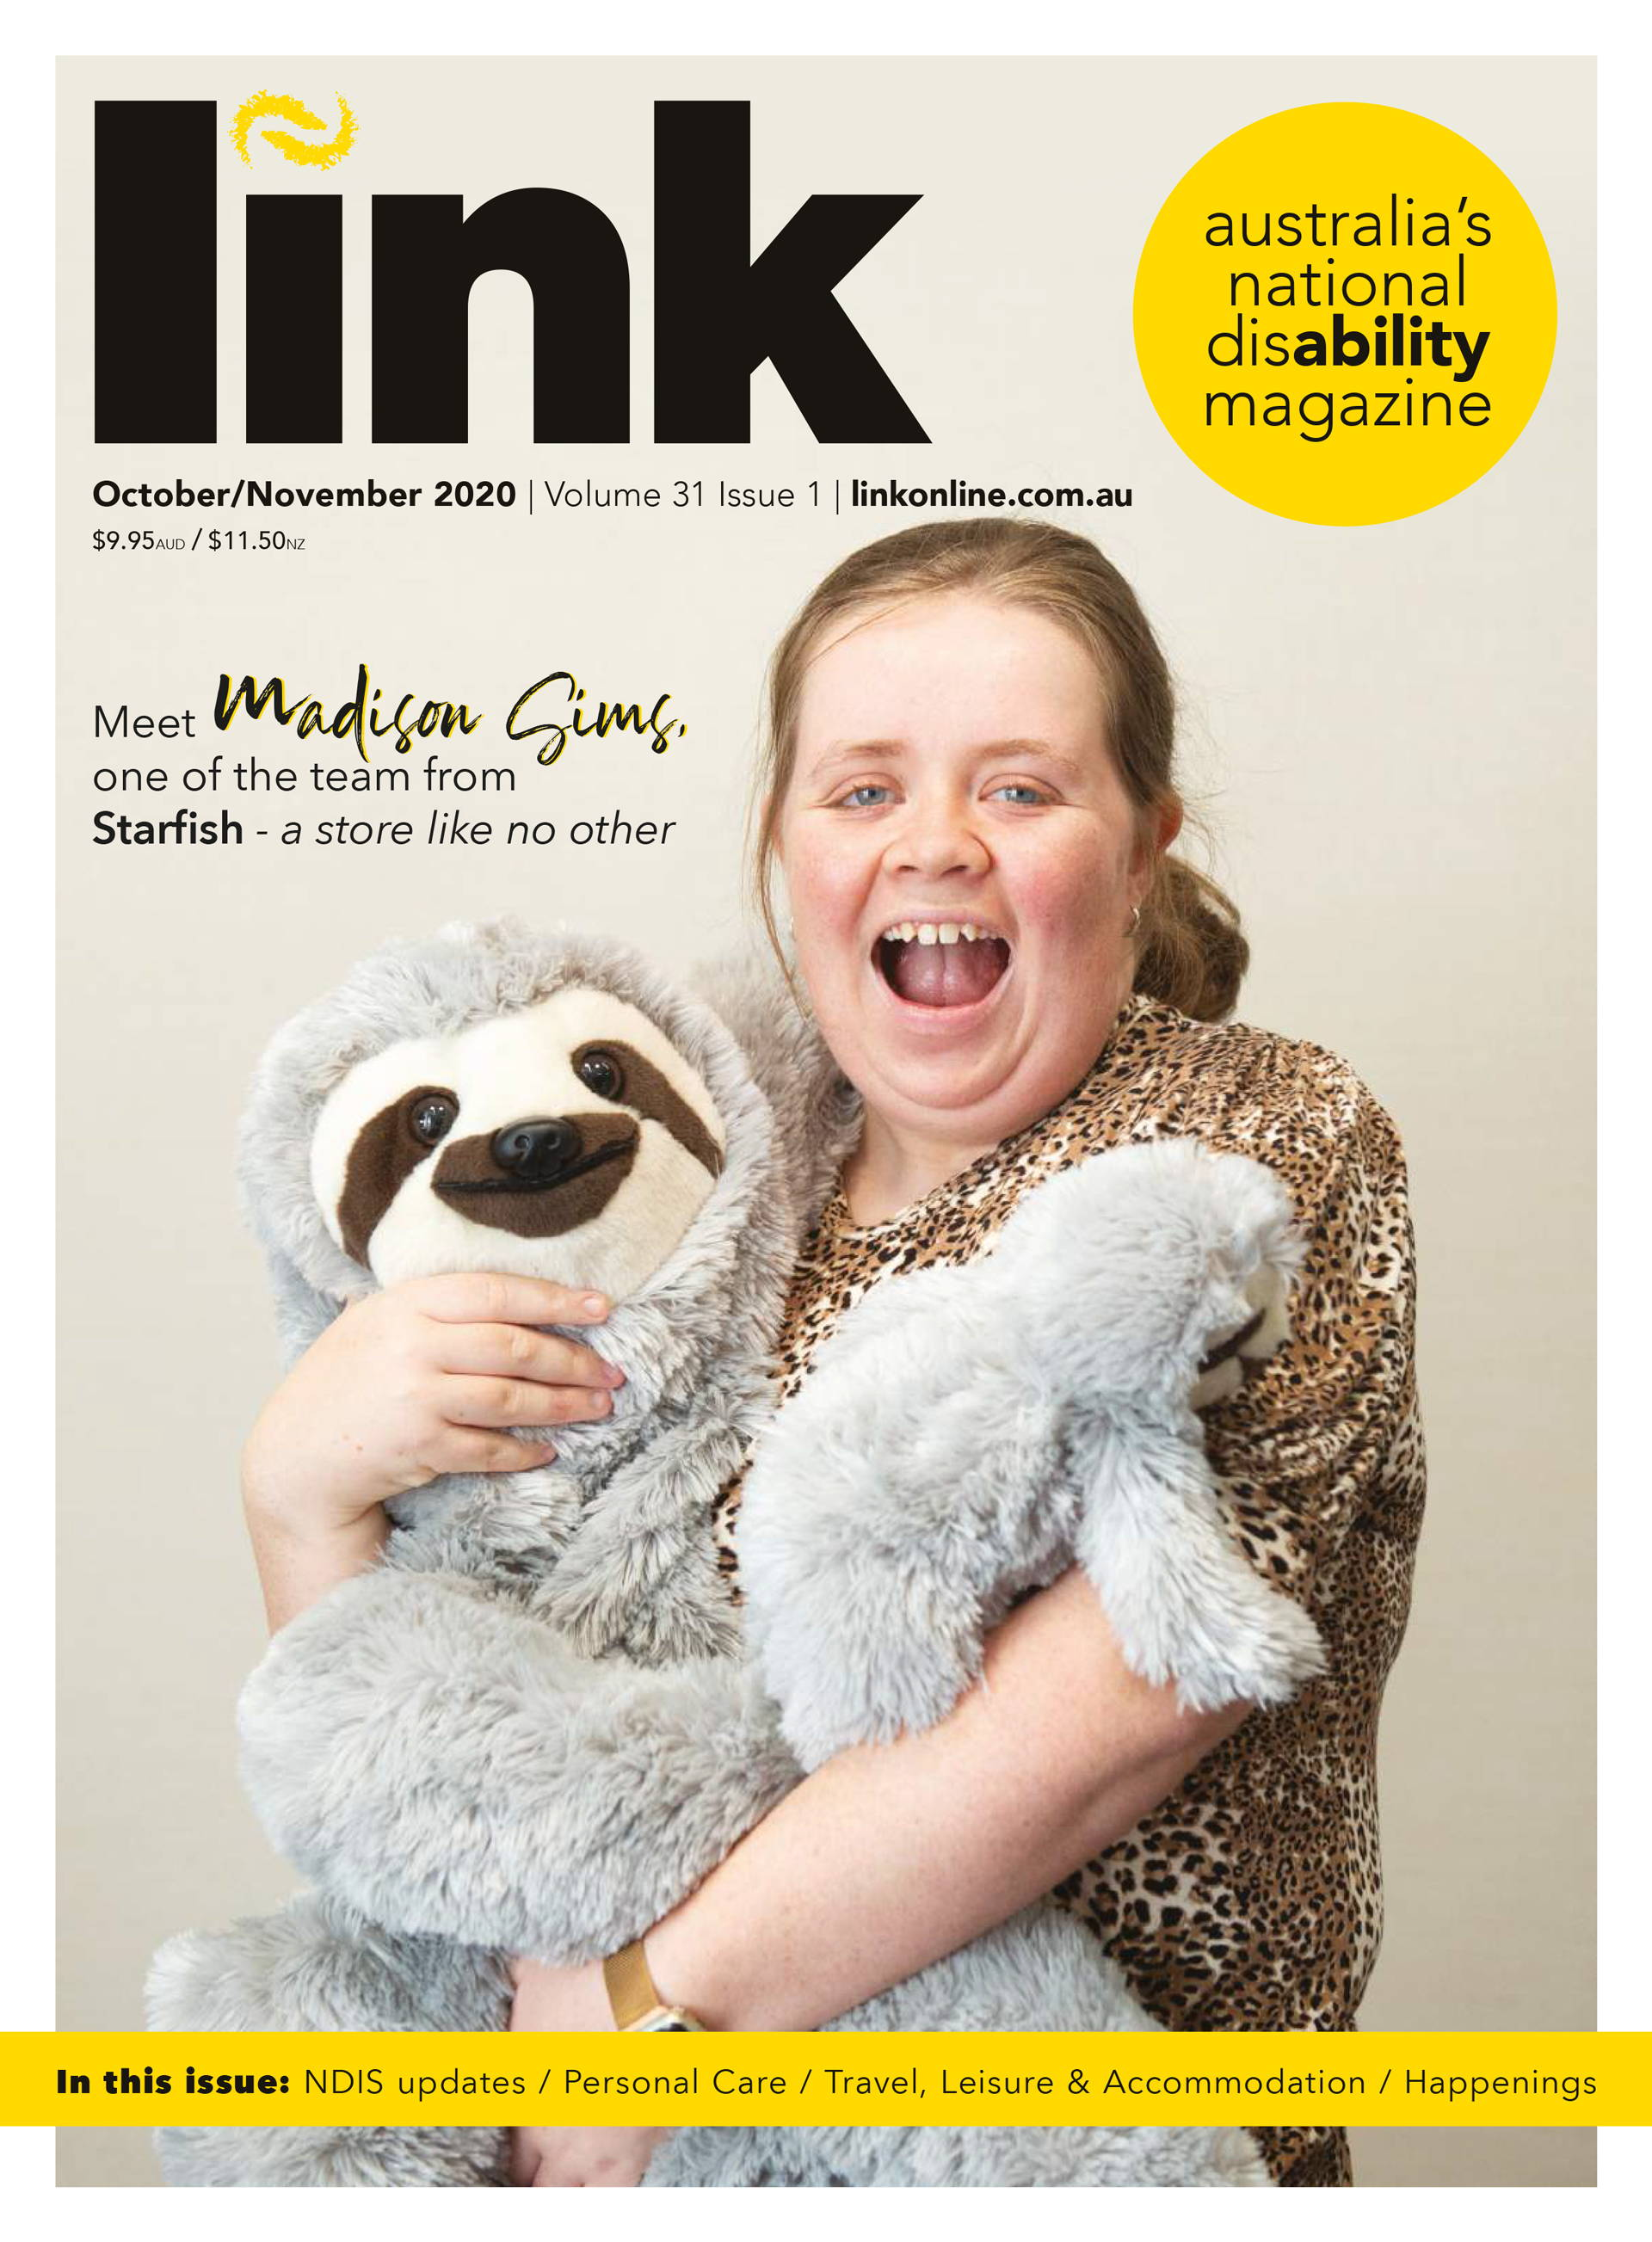 Dawn Clocks Featured in Link DisAbility Magazine October/November 2020 Edition.